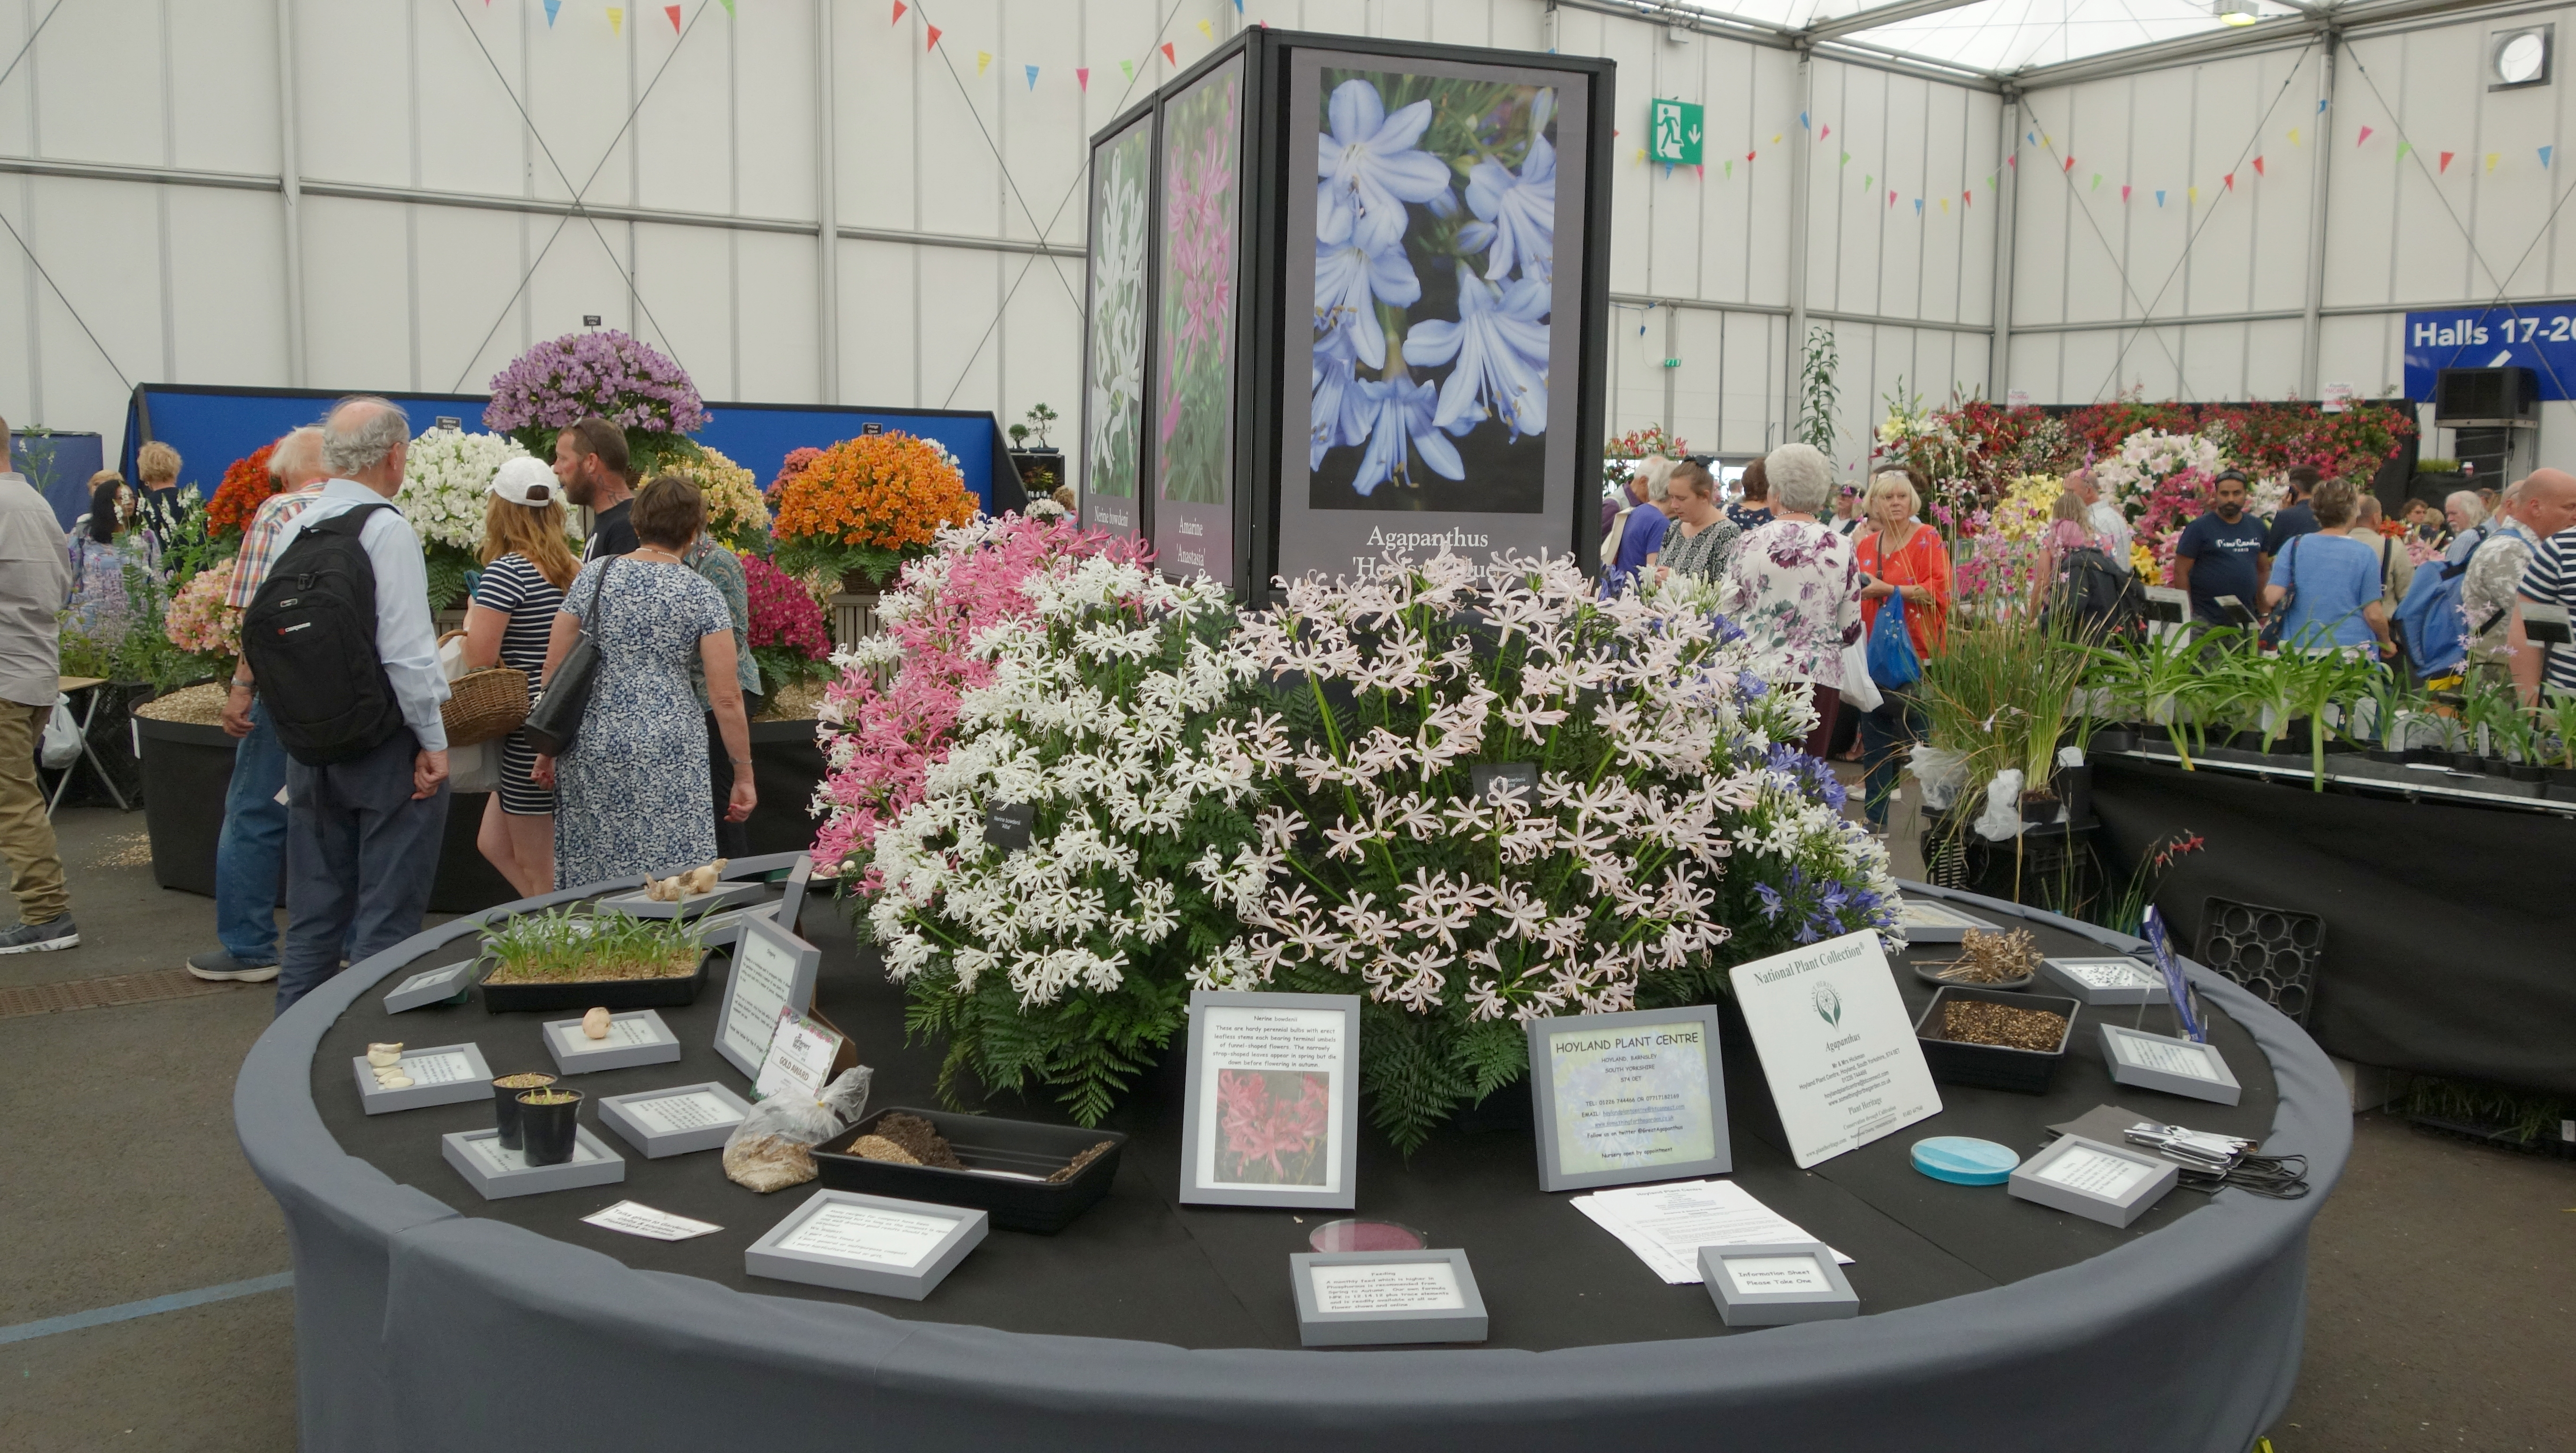 Agapanthus Display In Gardeners World Live Marquee